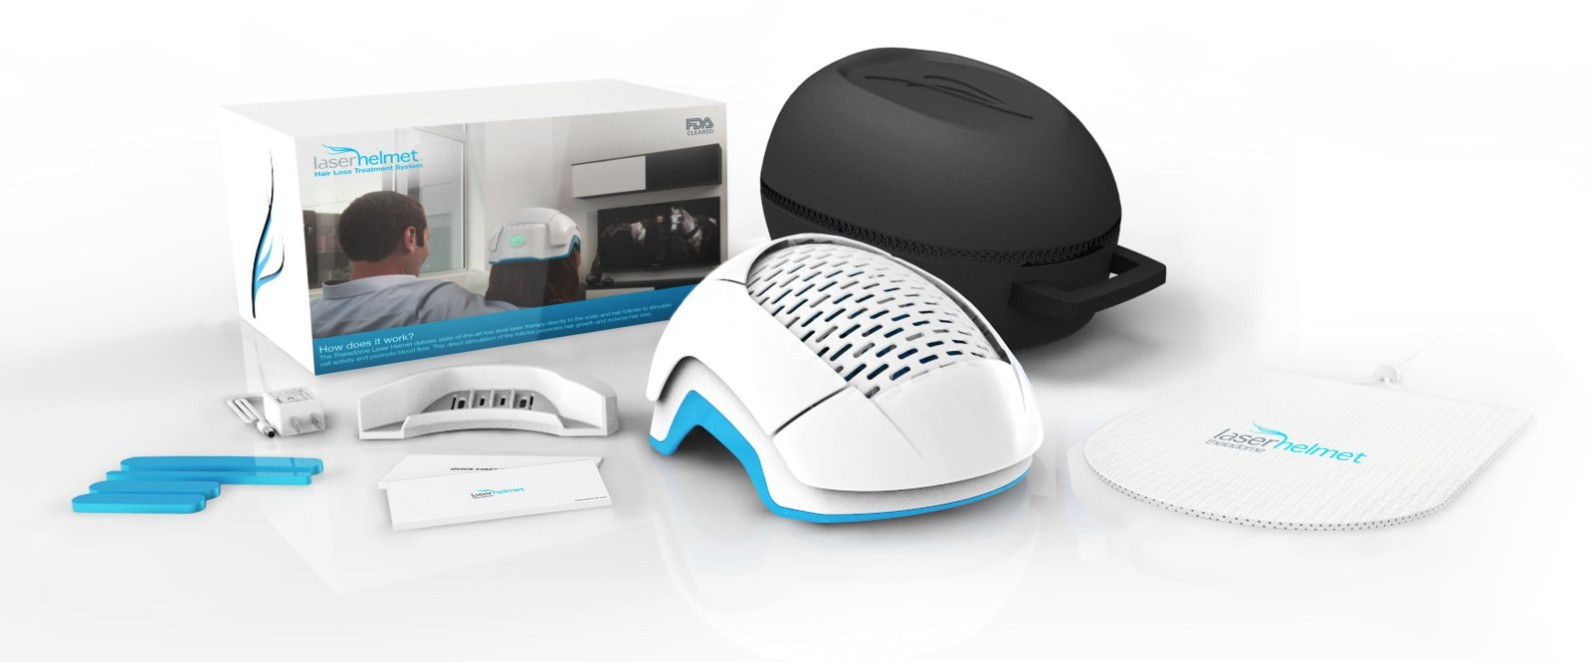 CORRECTING and REPLACING VIDEO Theradome Laser Helmet Reaches Indiegogo  Funding Goal In First 24 Hours | Business Wire